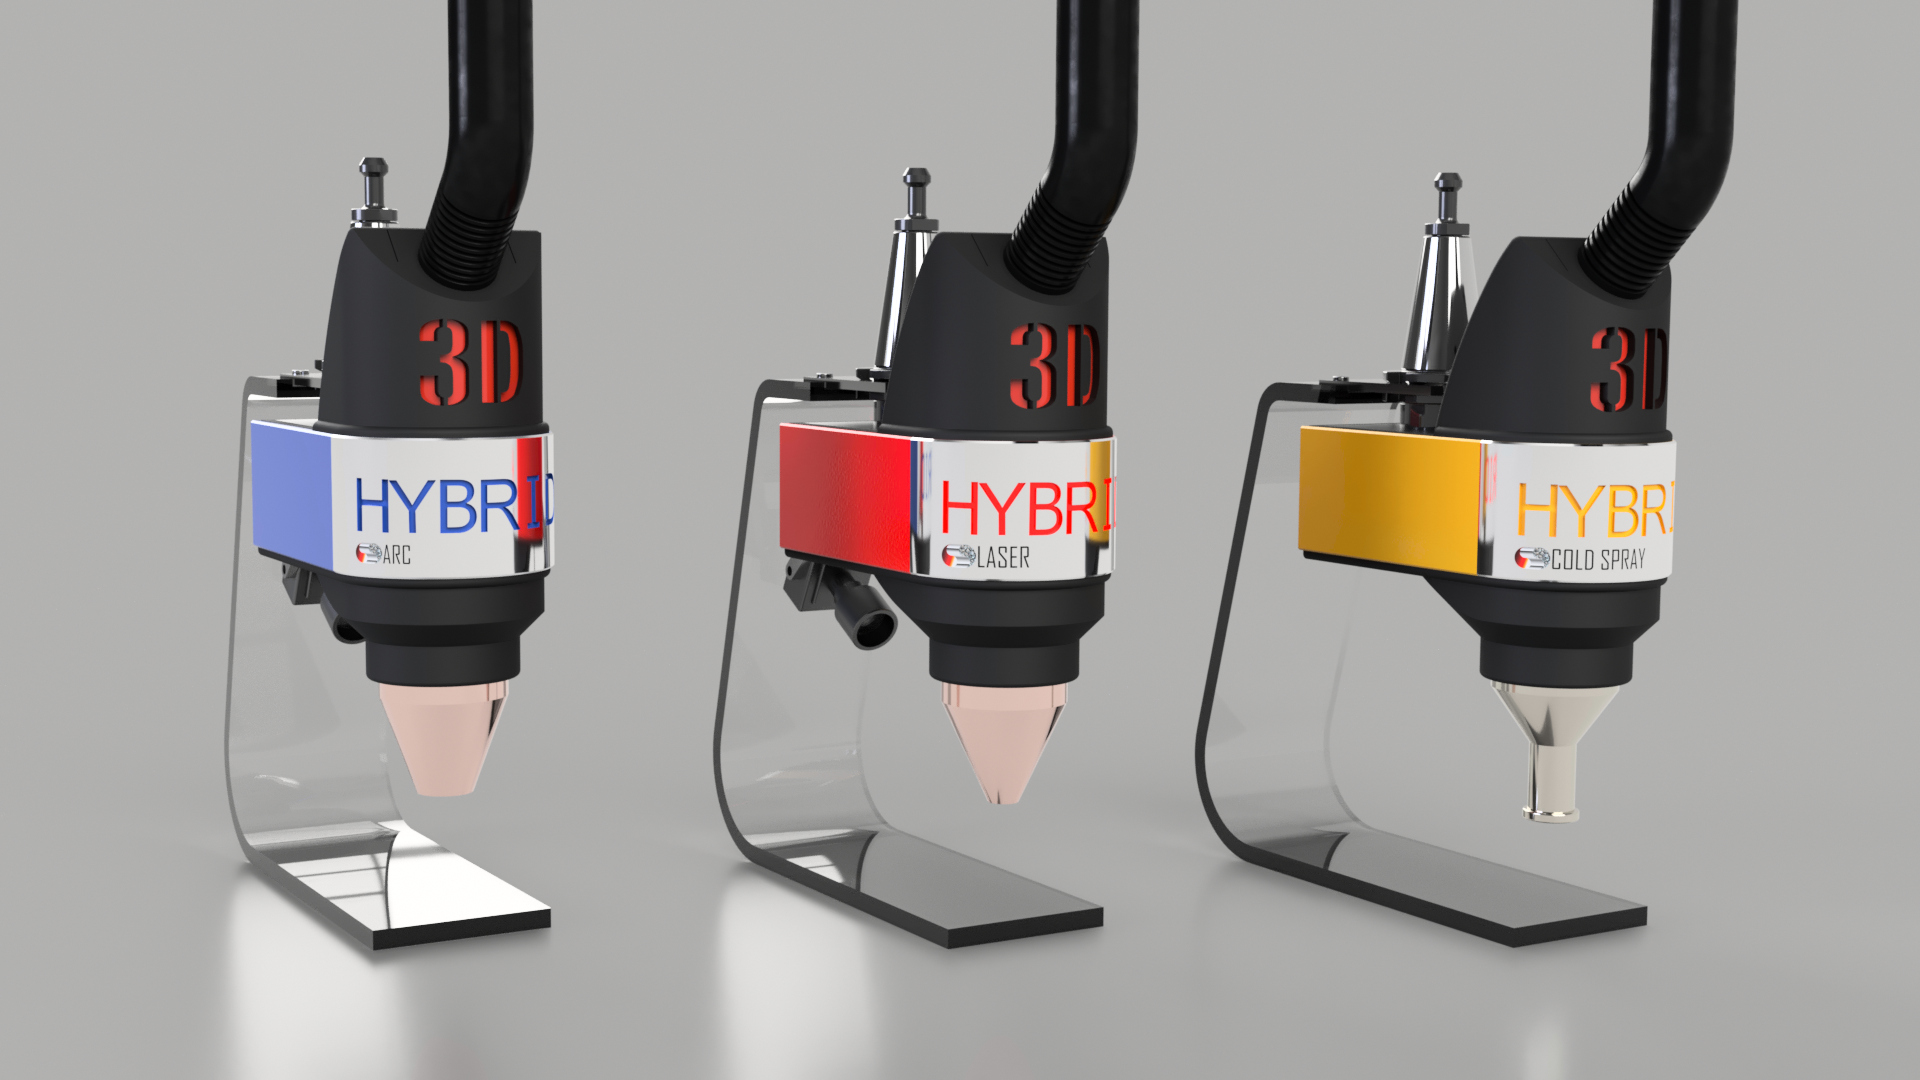 3D-Hybrid releases metal 3D printing toolheads for any CNC